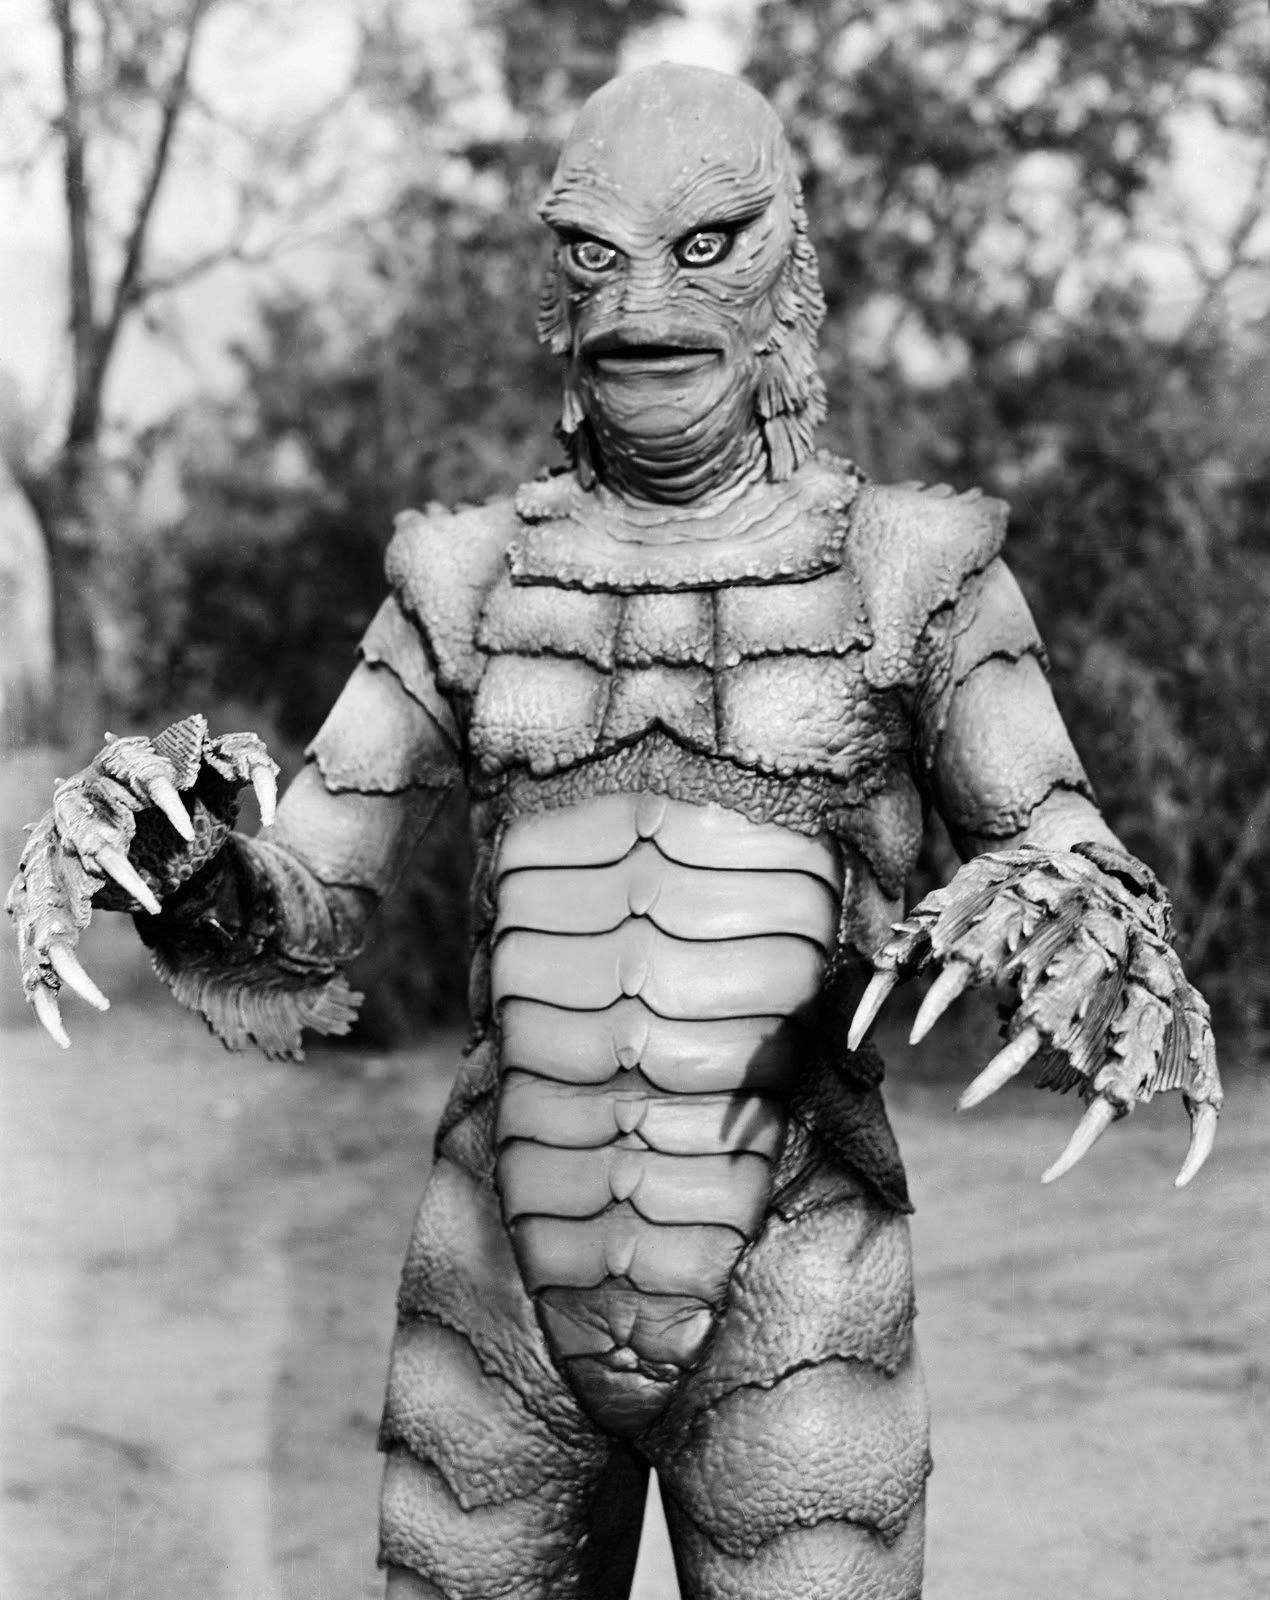 If 1954 monsters are your style for Halloween this year, you might ...